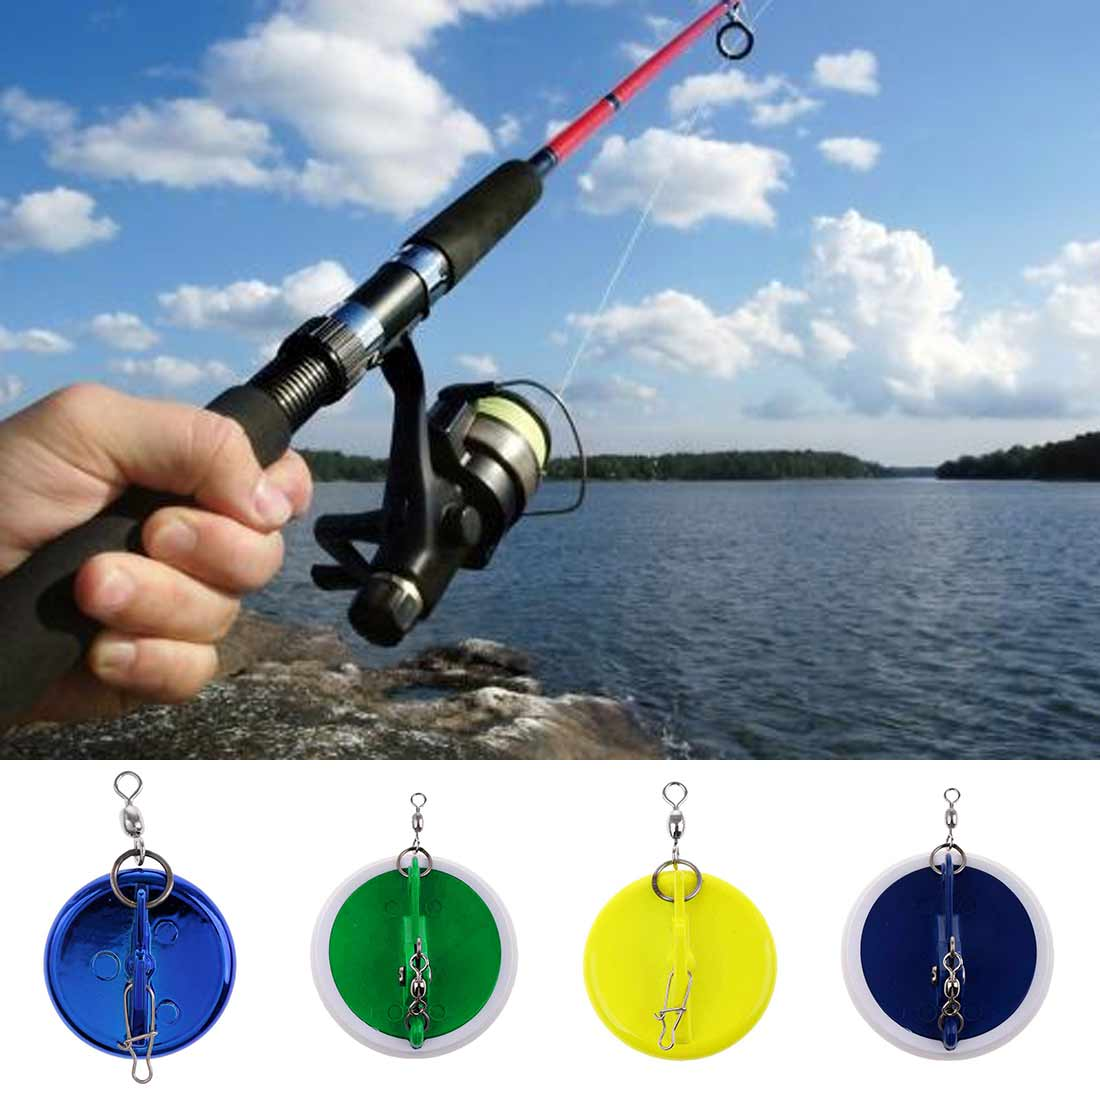 Fishing Trolling Disc With Lead Weight Sinker ConnectorSinker Connector Fishing Trolling Disc Fishing Tackle Accessorie